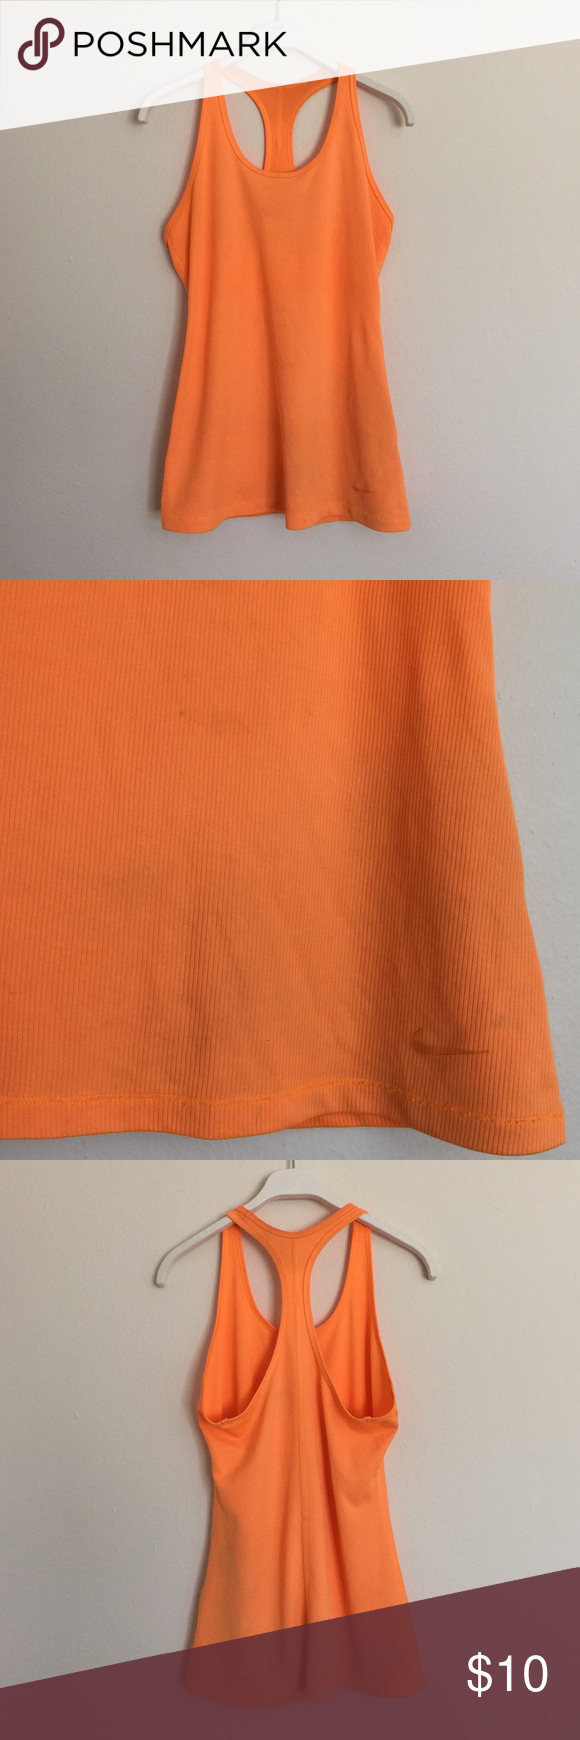 Nike Orange dri-fit racerback tank medium Love the bright color! Good condition but there is a faint discoloration pictured and a small snag in the fabric. Price reflected. Bundle to save 25%! Nike Tops Tank Tops